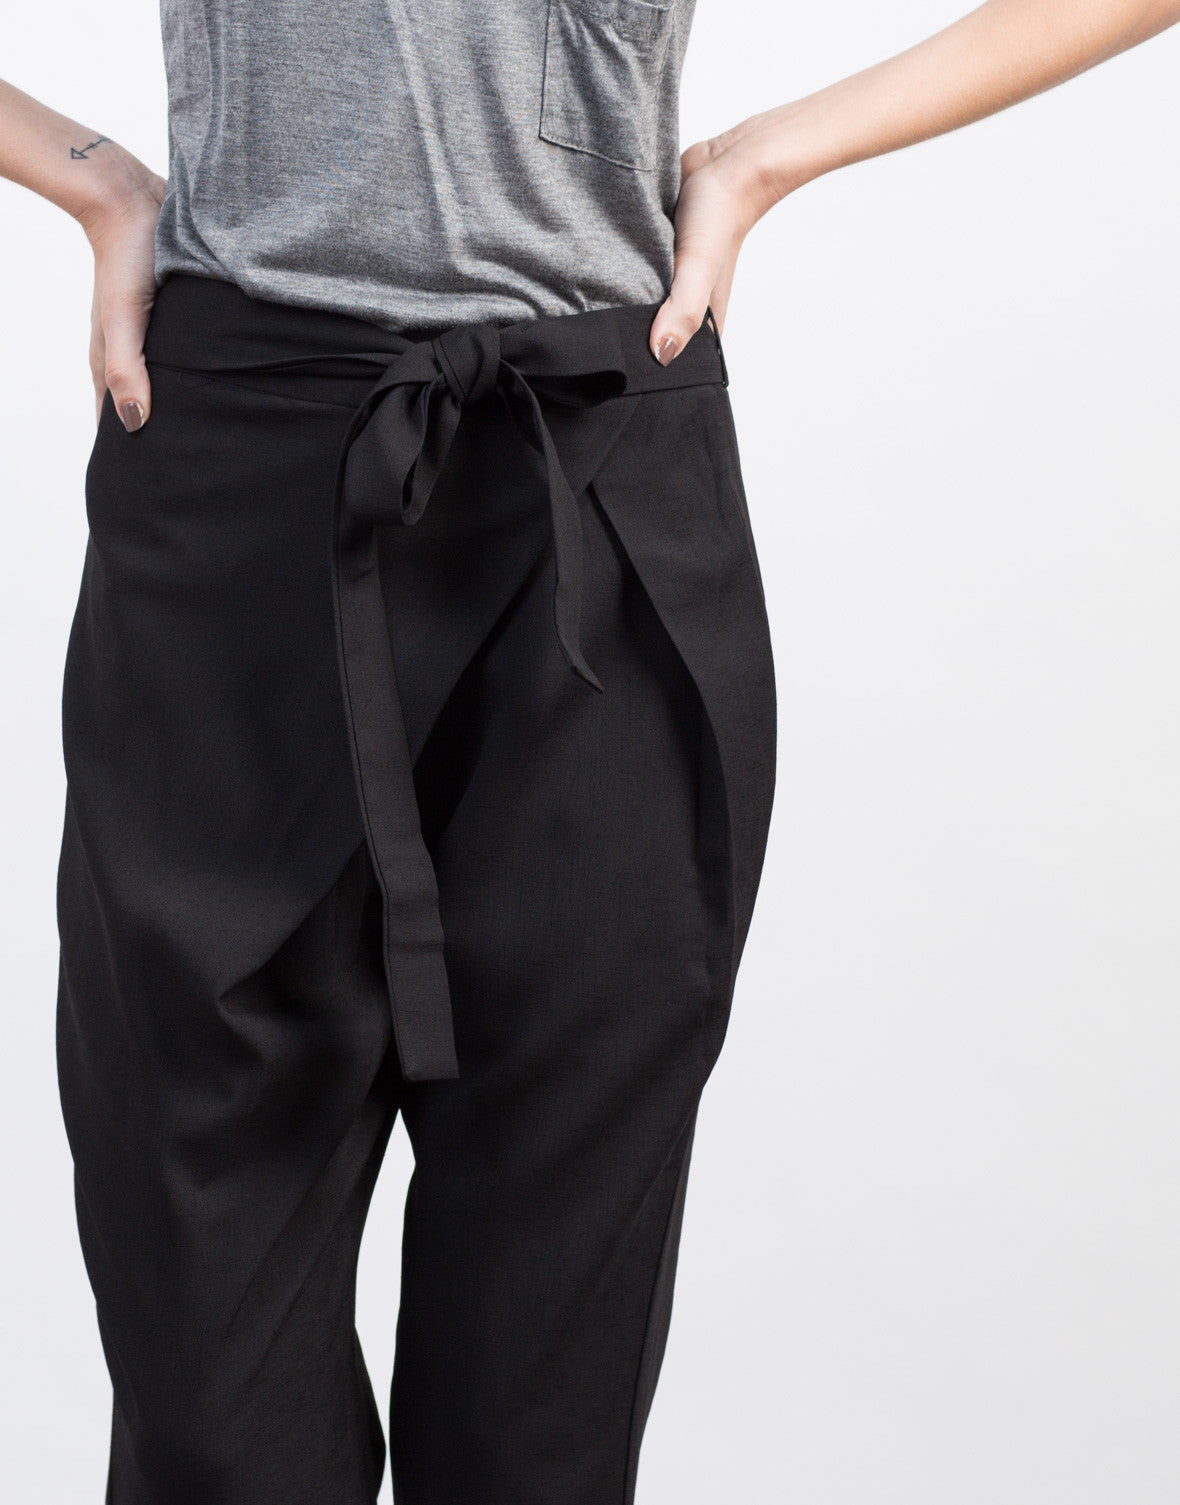 Detail of Crossover Waist Tie Pants